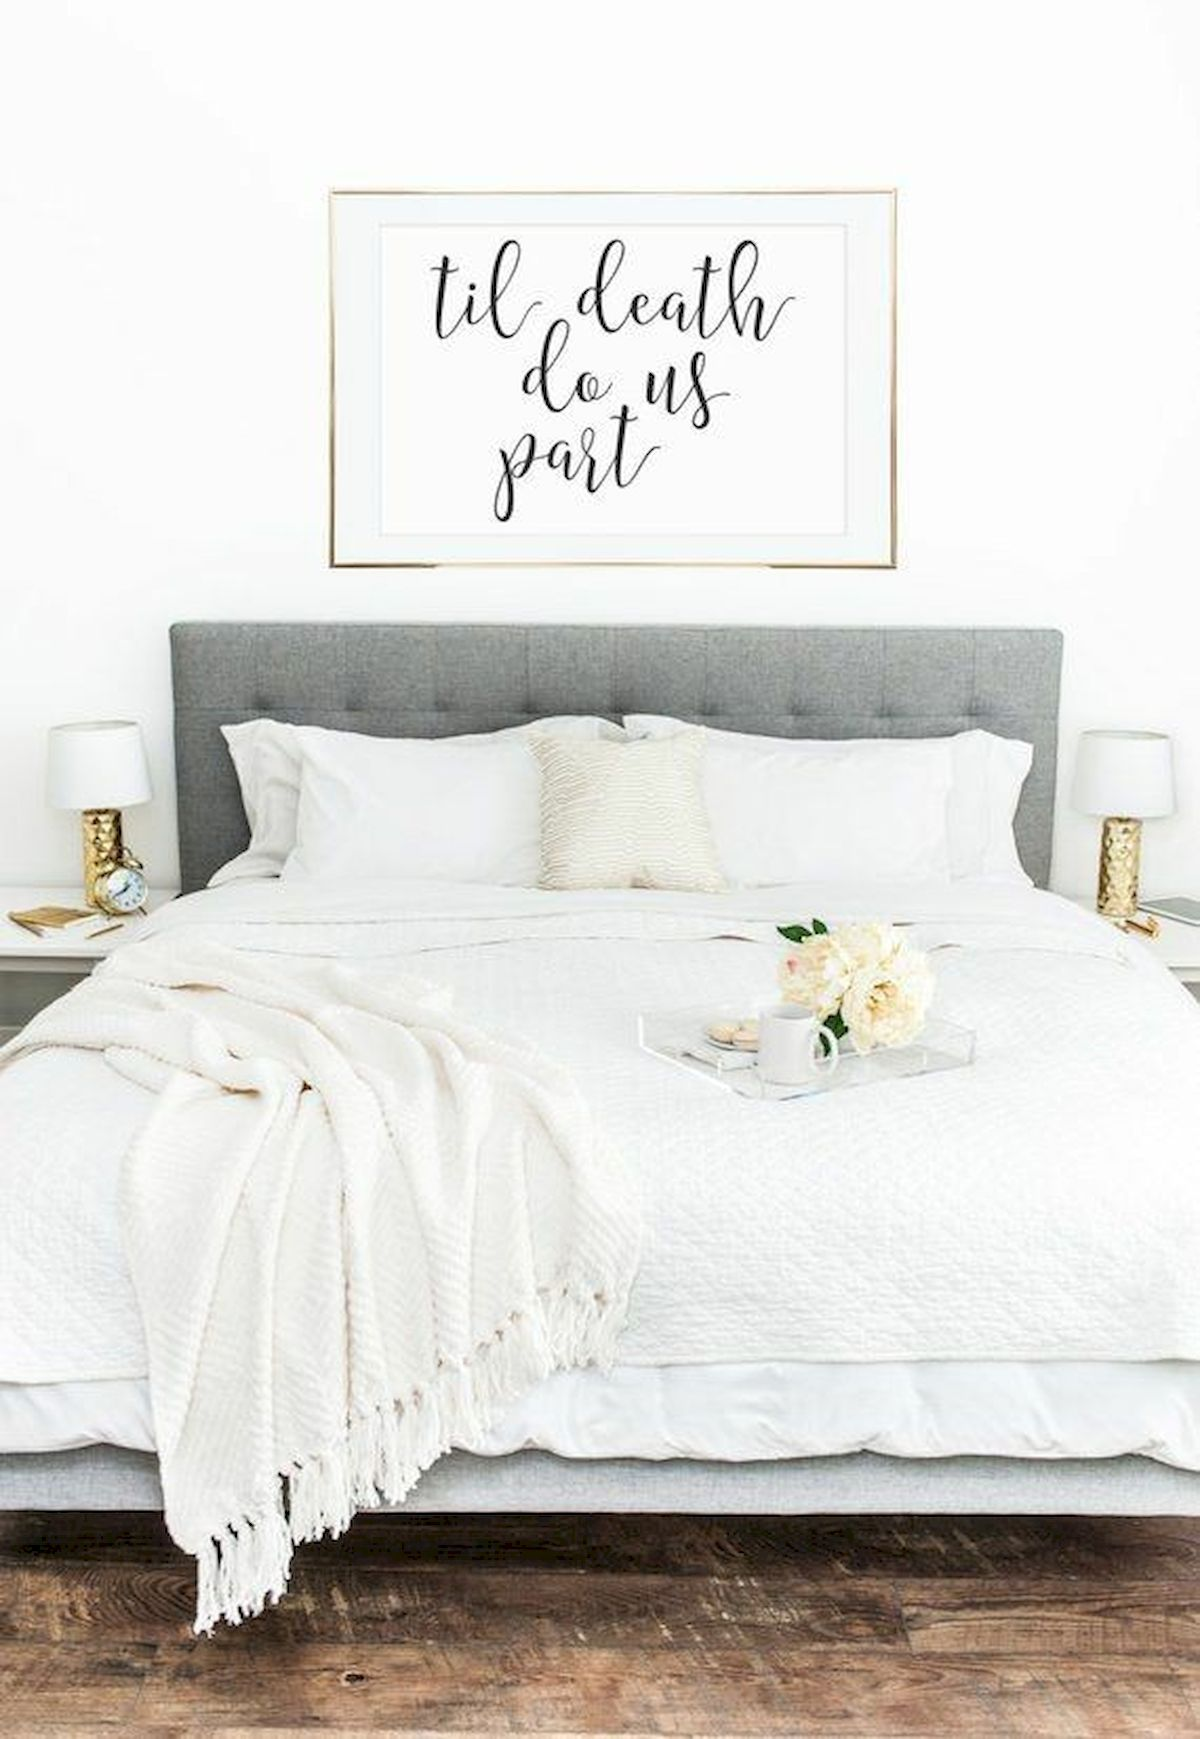 70 Simple Wall Bedroom Decor and Design Ideas (27)